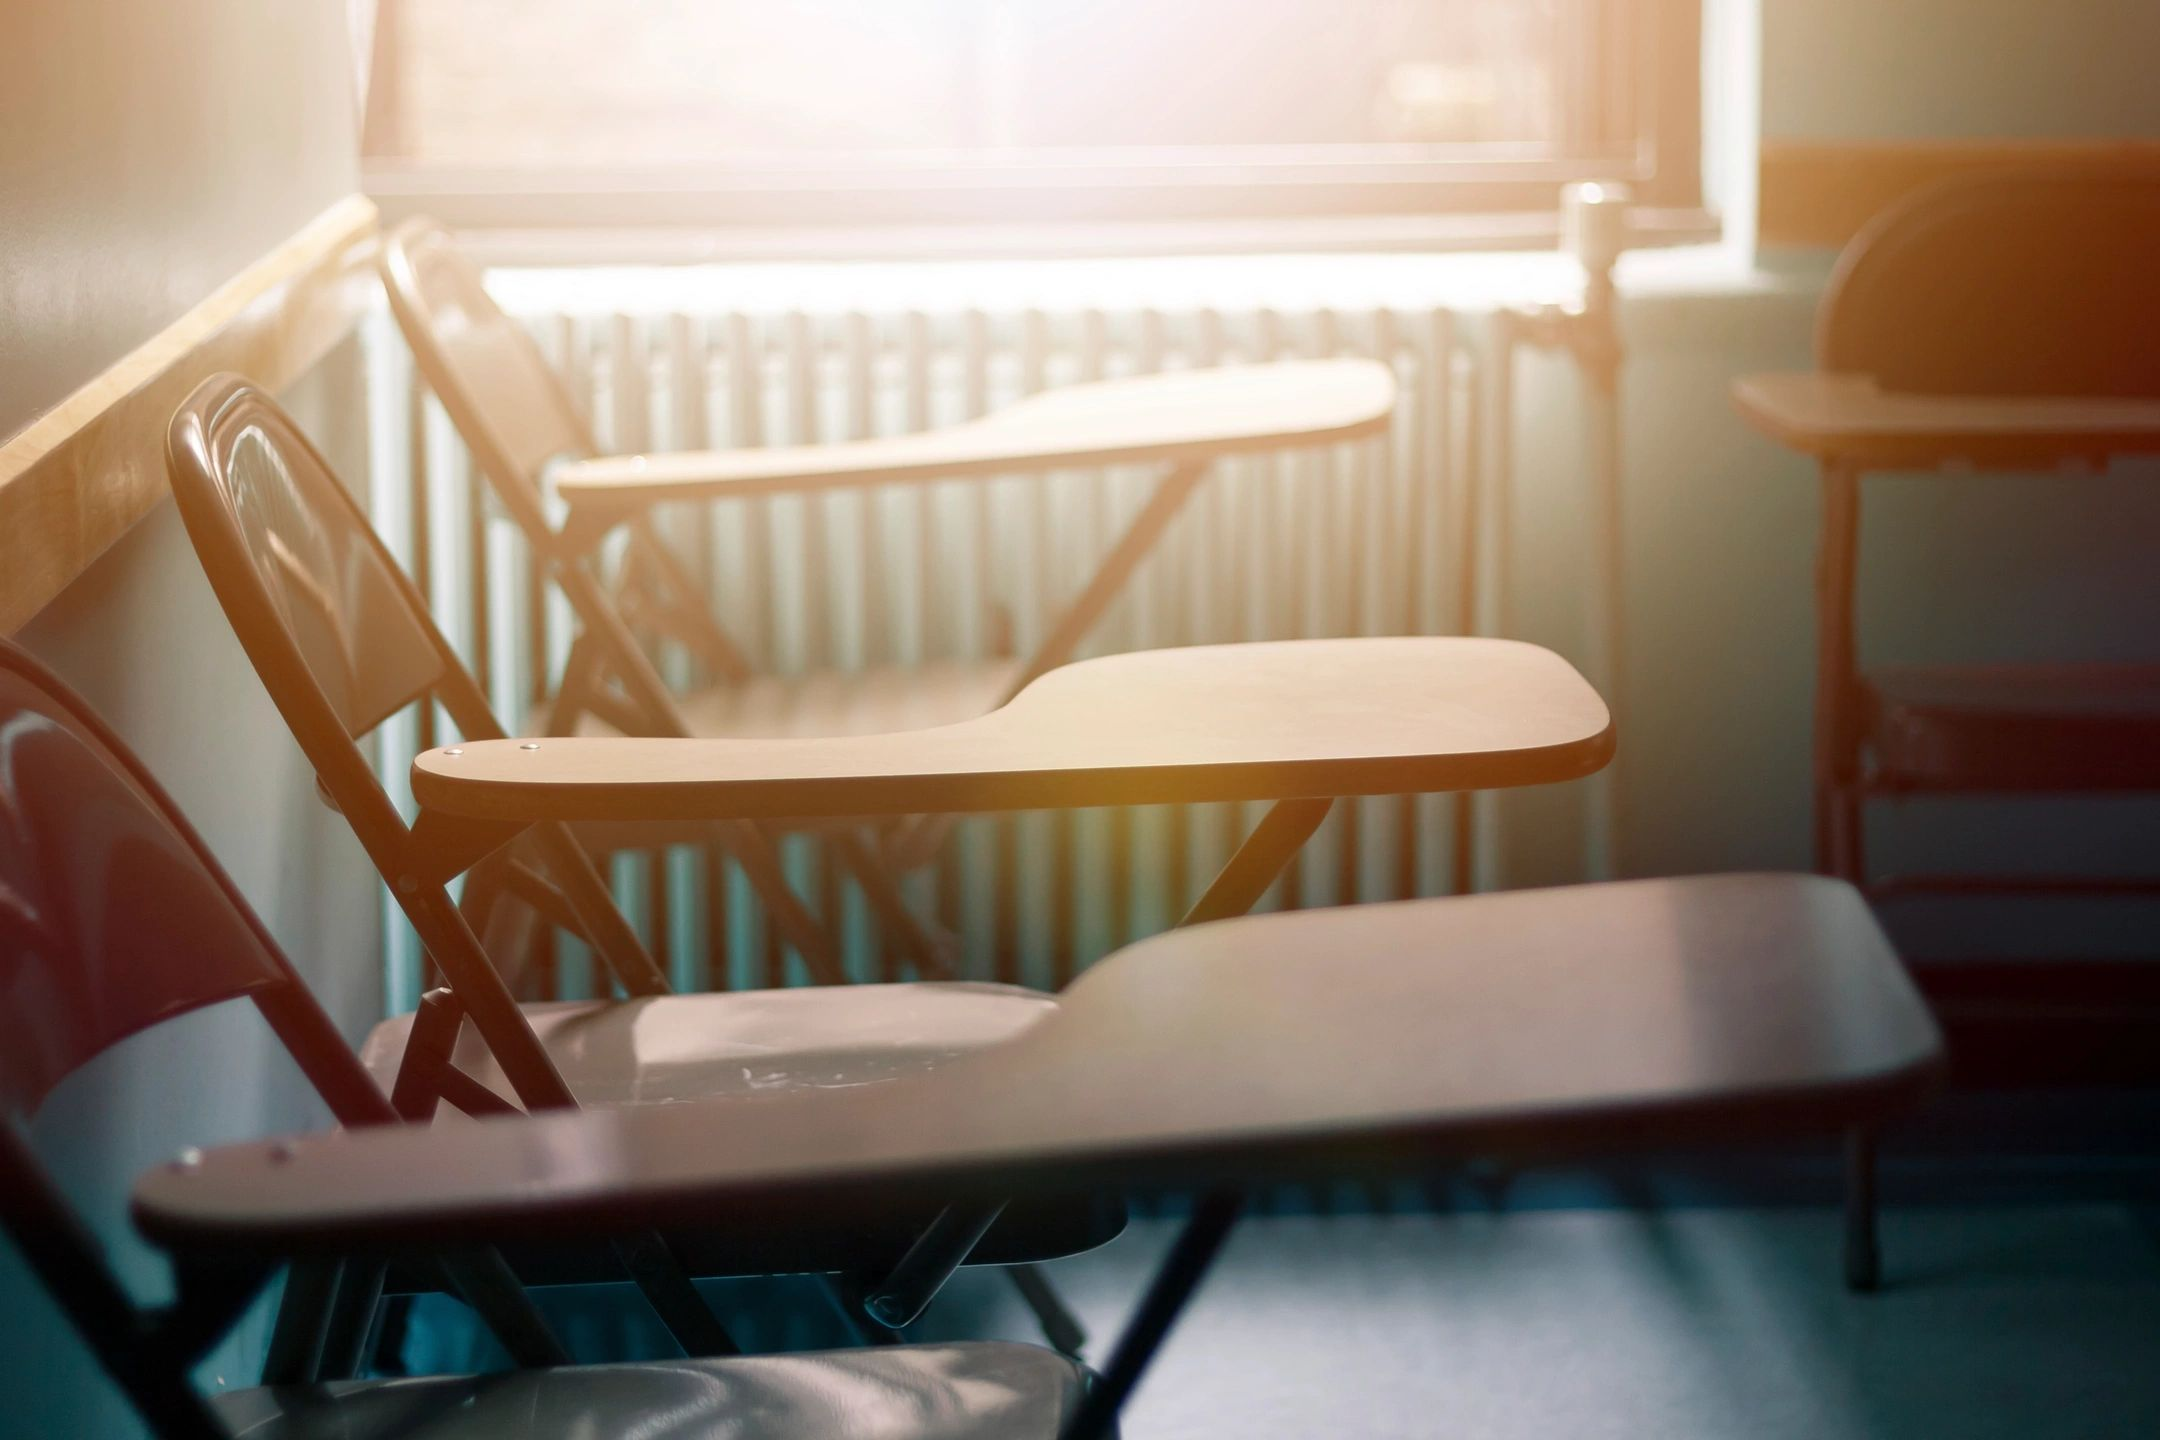 Image of 3 desks in classroom like that of DC widow blog writer Marjorie Brimley